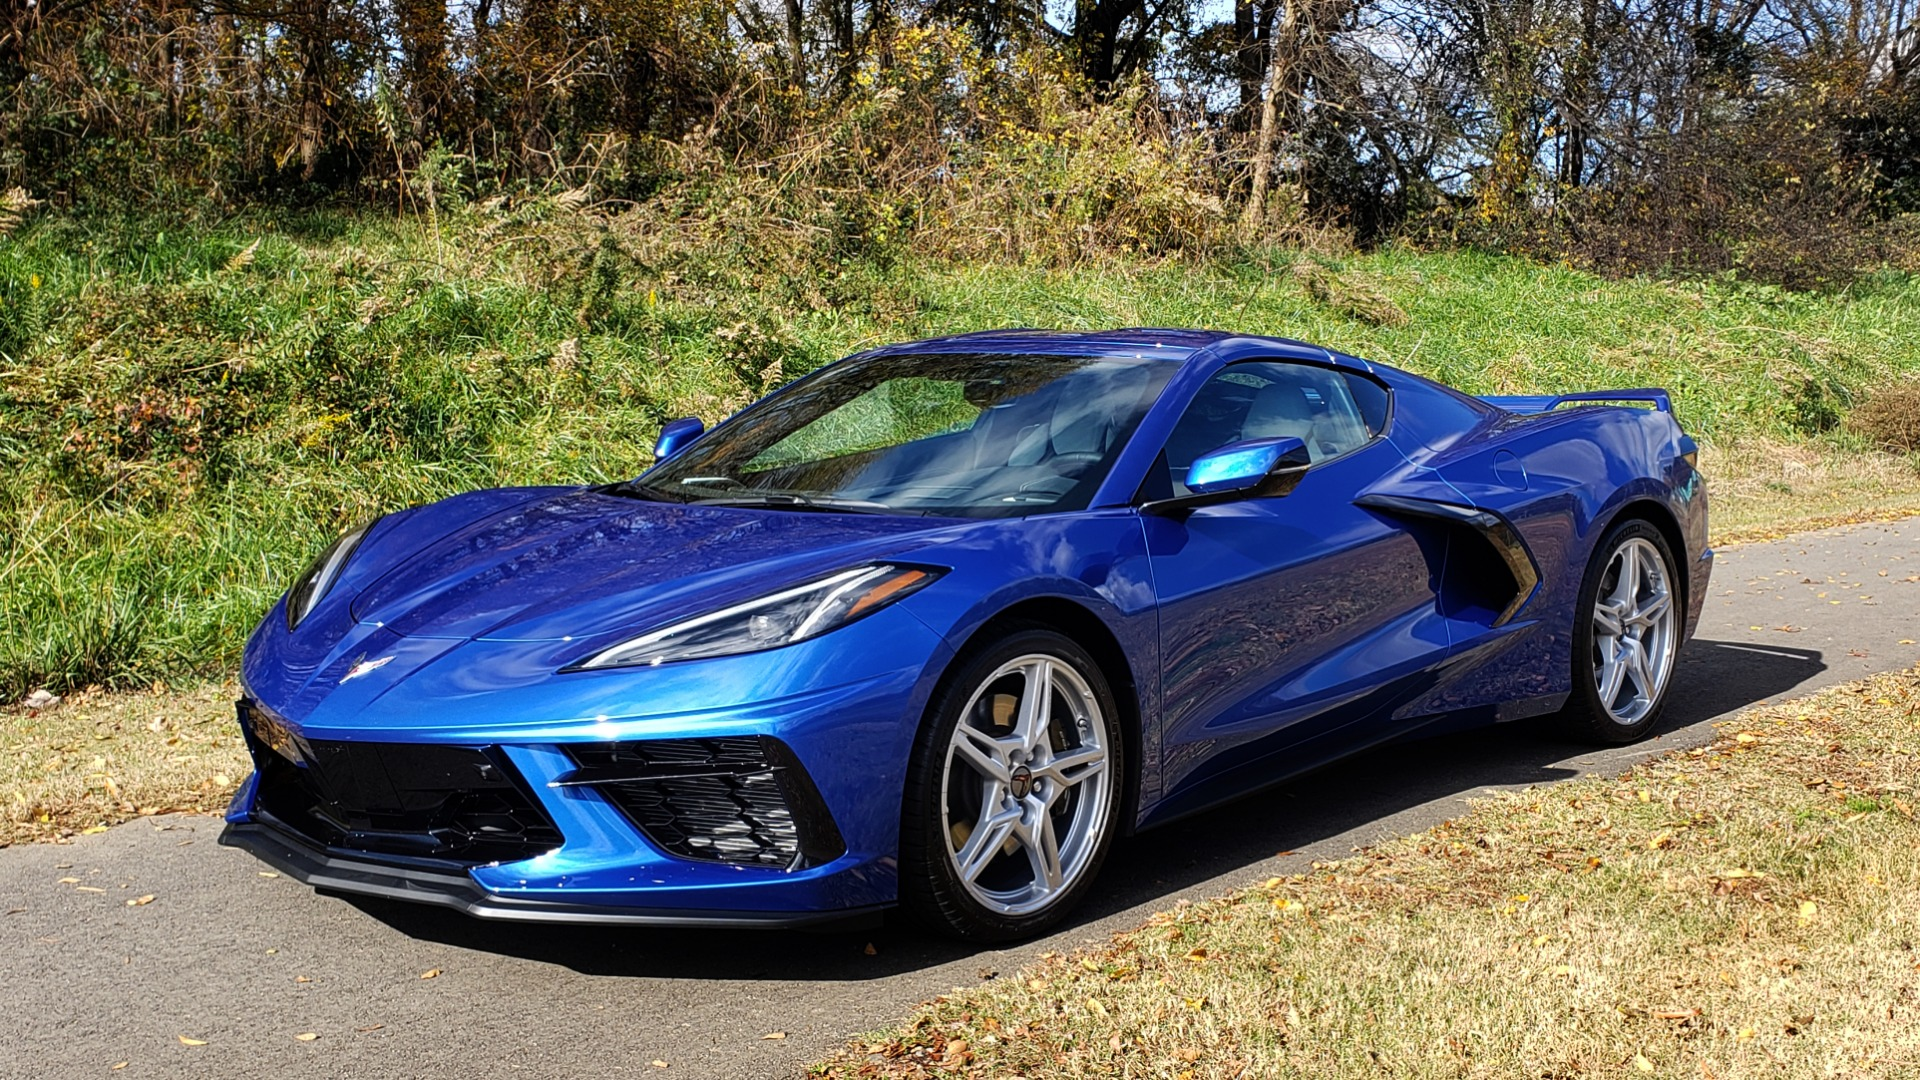 Used 2020 Chevrolet C8 CORVETTE STINGRAY 2LT COUPE / NAV / HUD / BOSE / GT2 SEATS / FRONT LIFT / REARVIEW for sale $98,999 at Formula Imports in Charlotte NC 28227 9